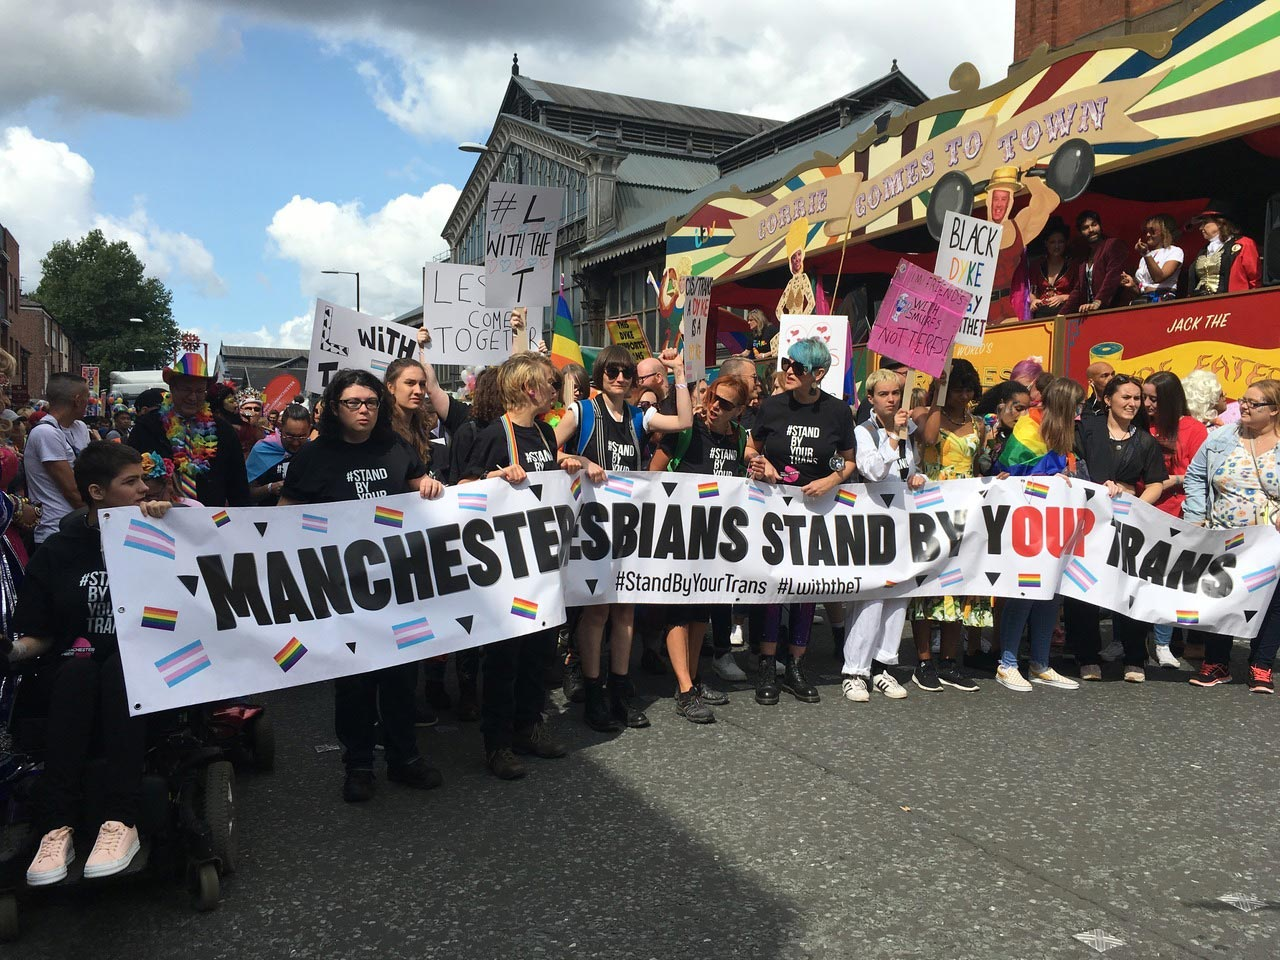 Pro-trans march in Manchester, UK